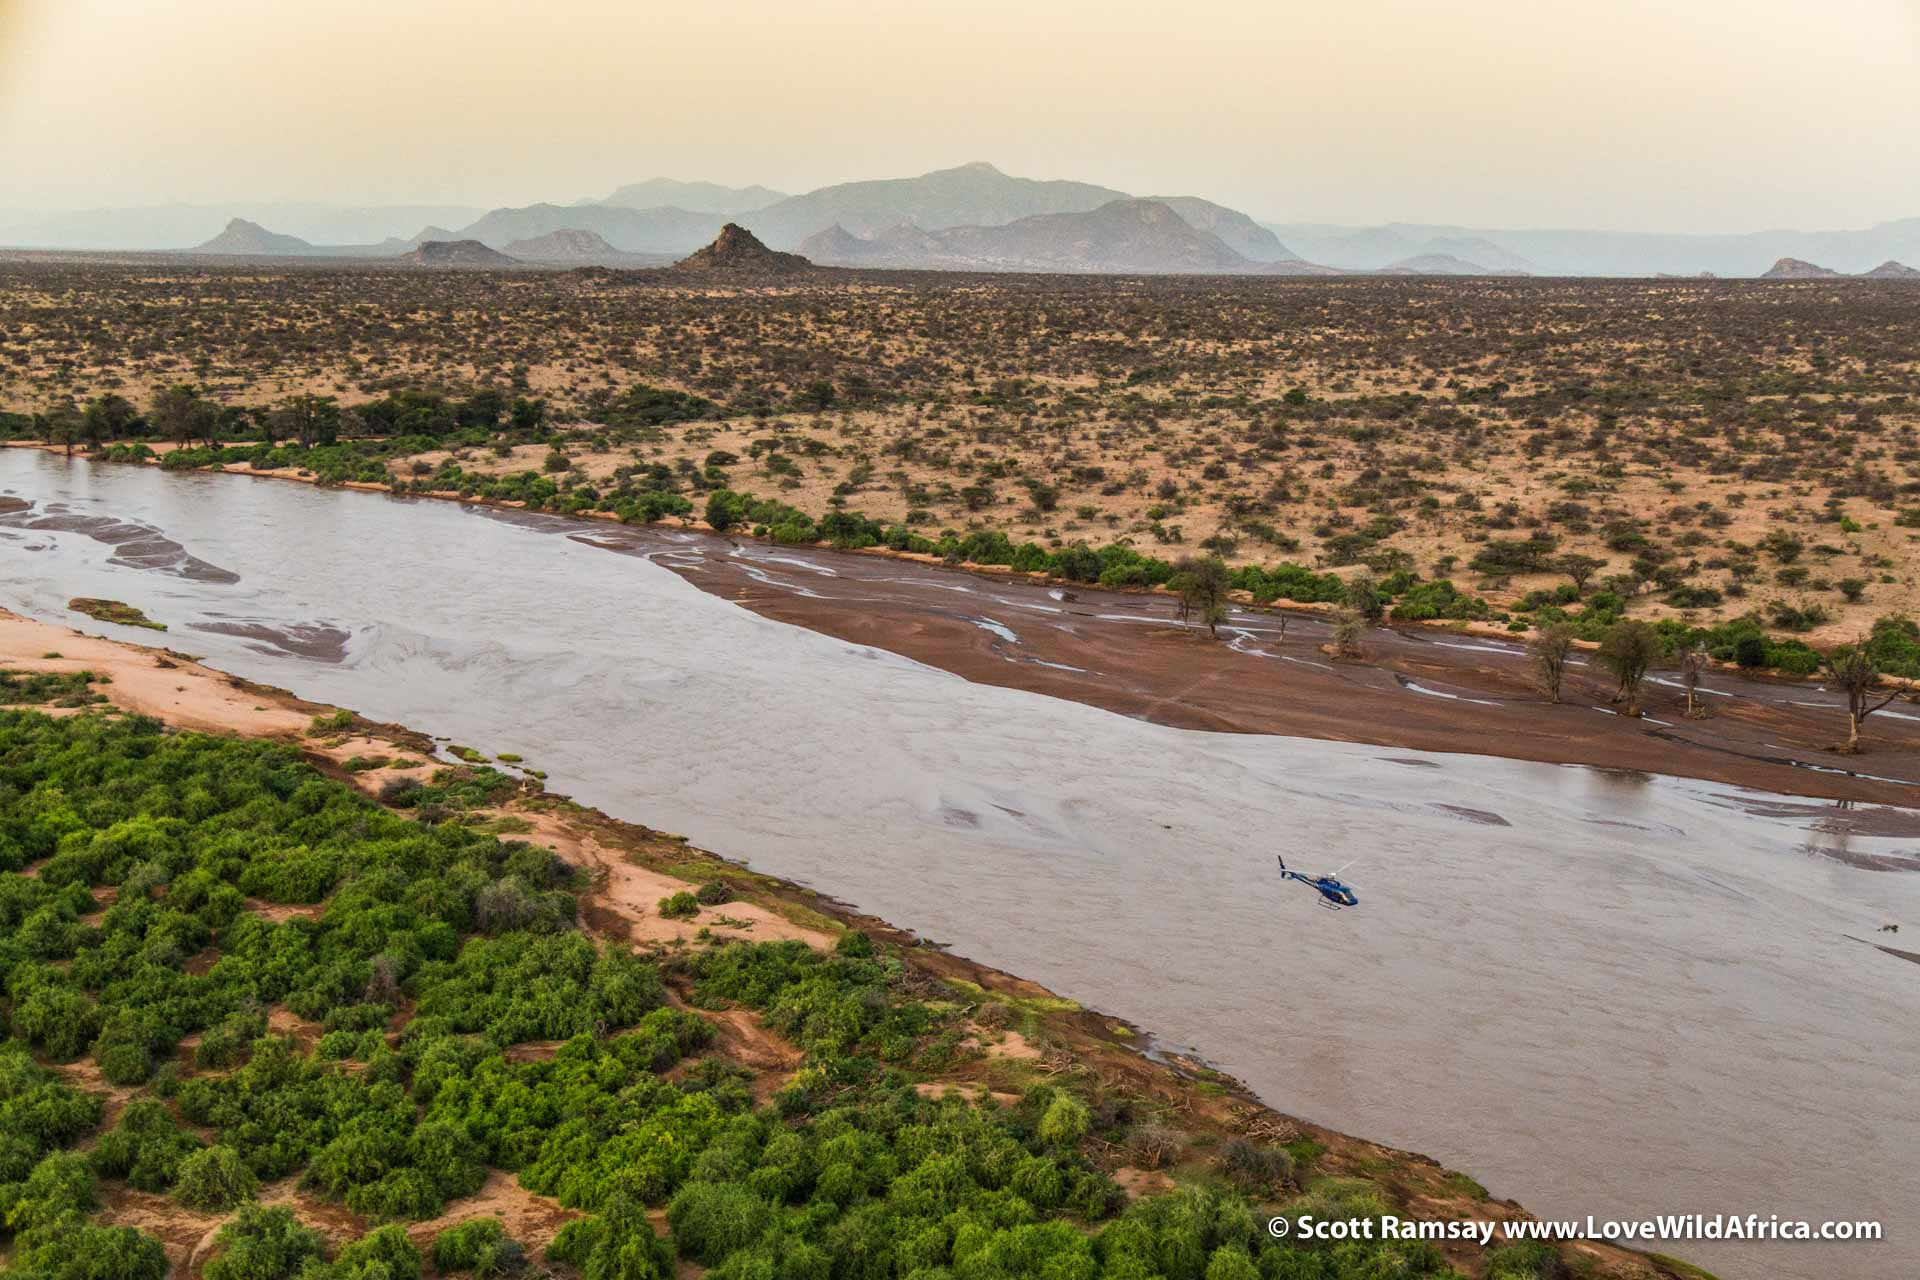 Leaving Sasaab Lodge before sunrise, flying over the Ewaso Ng'iro River.